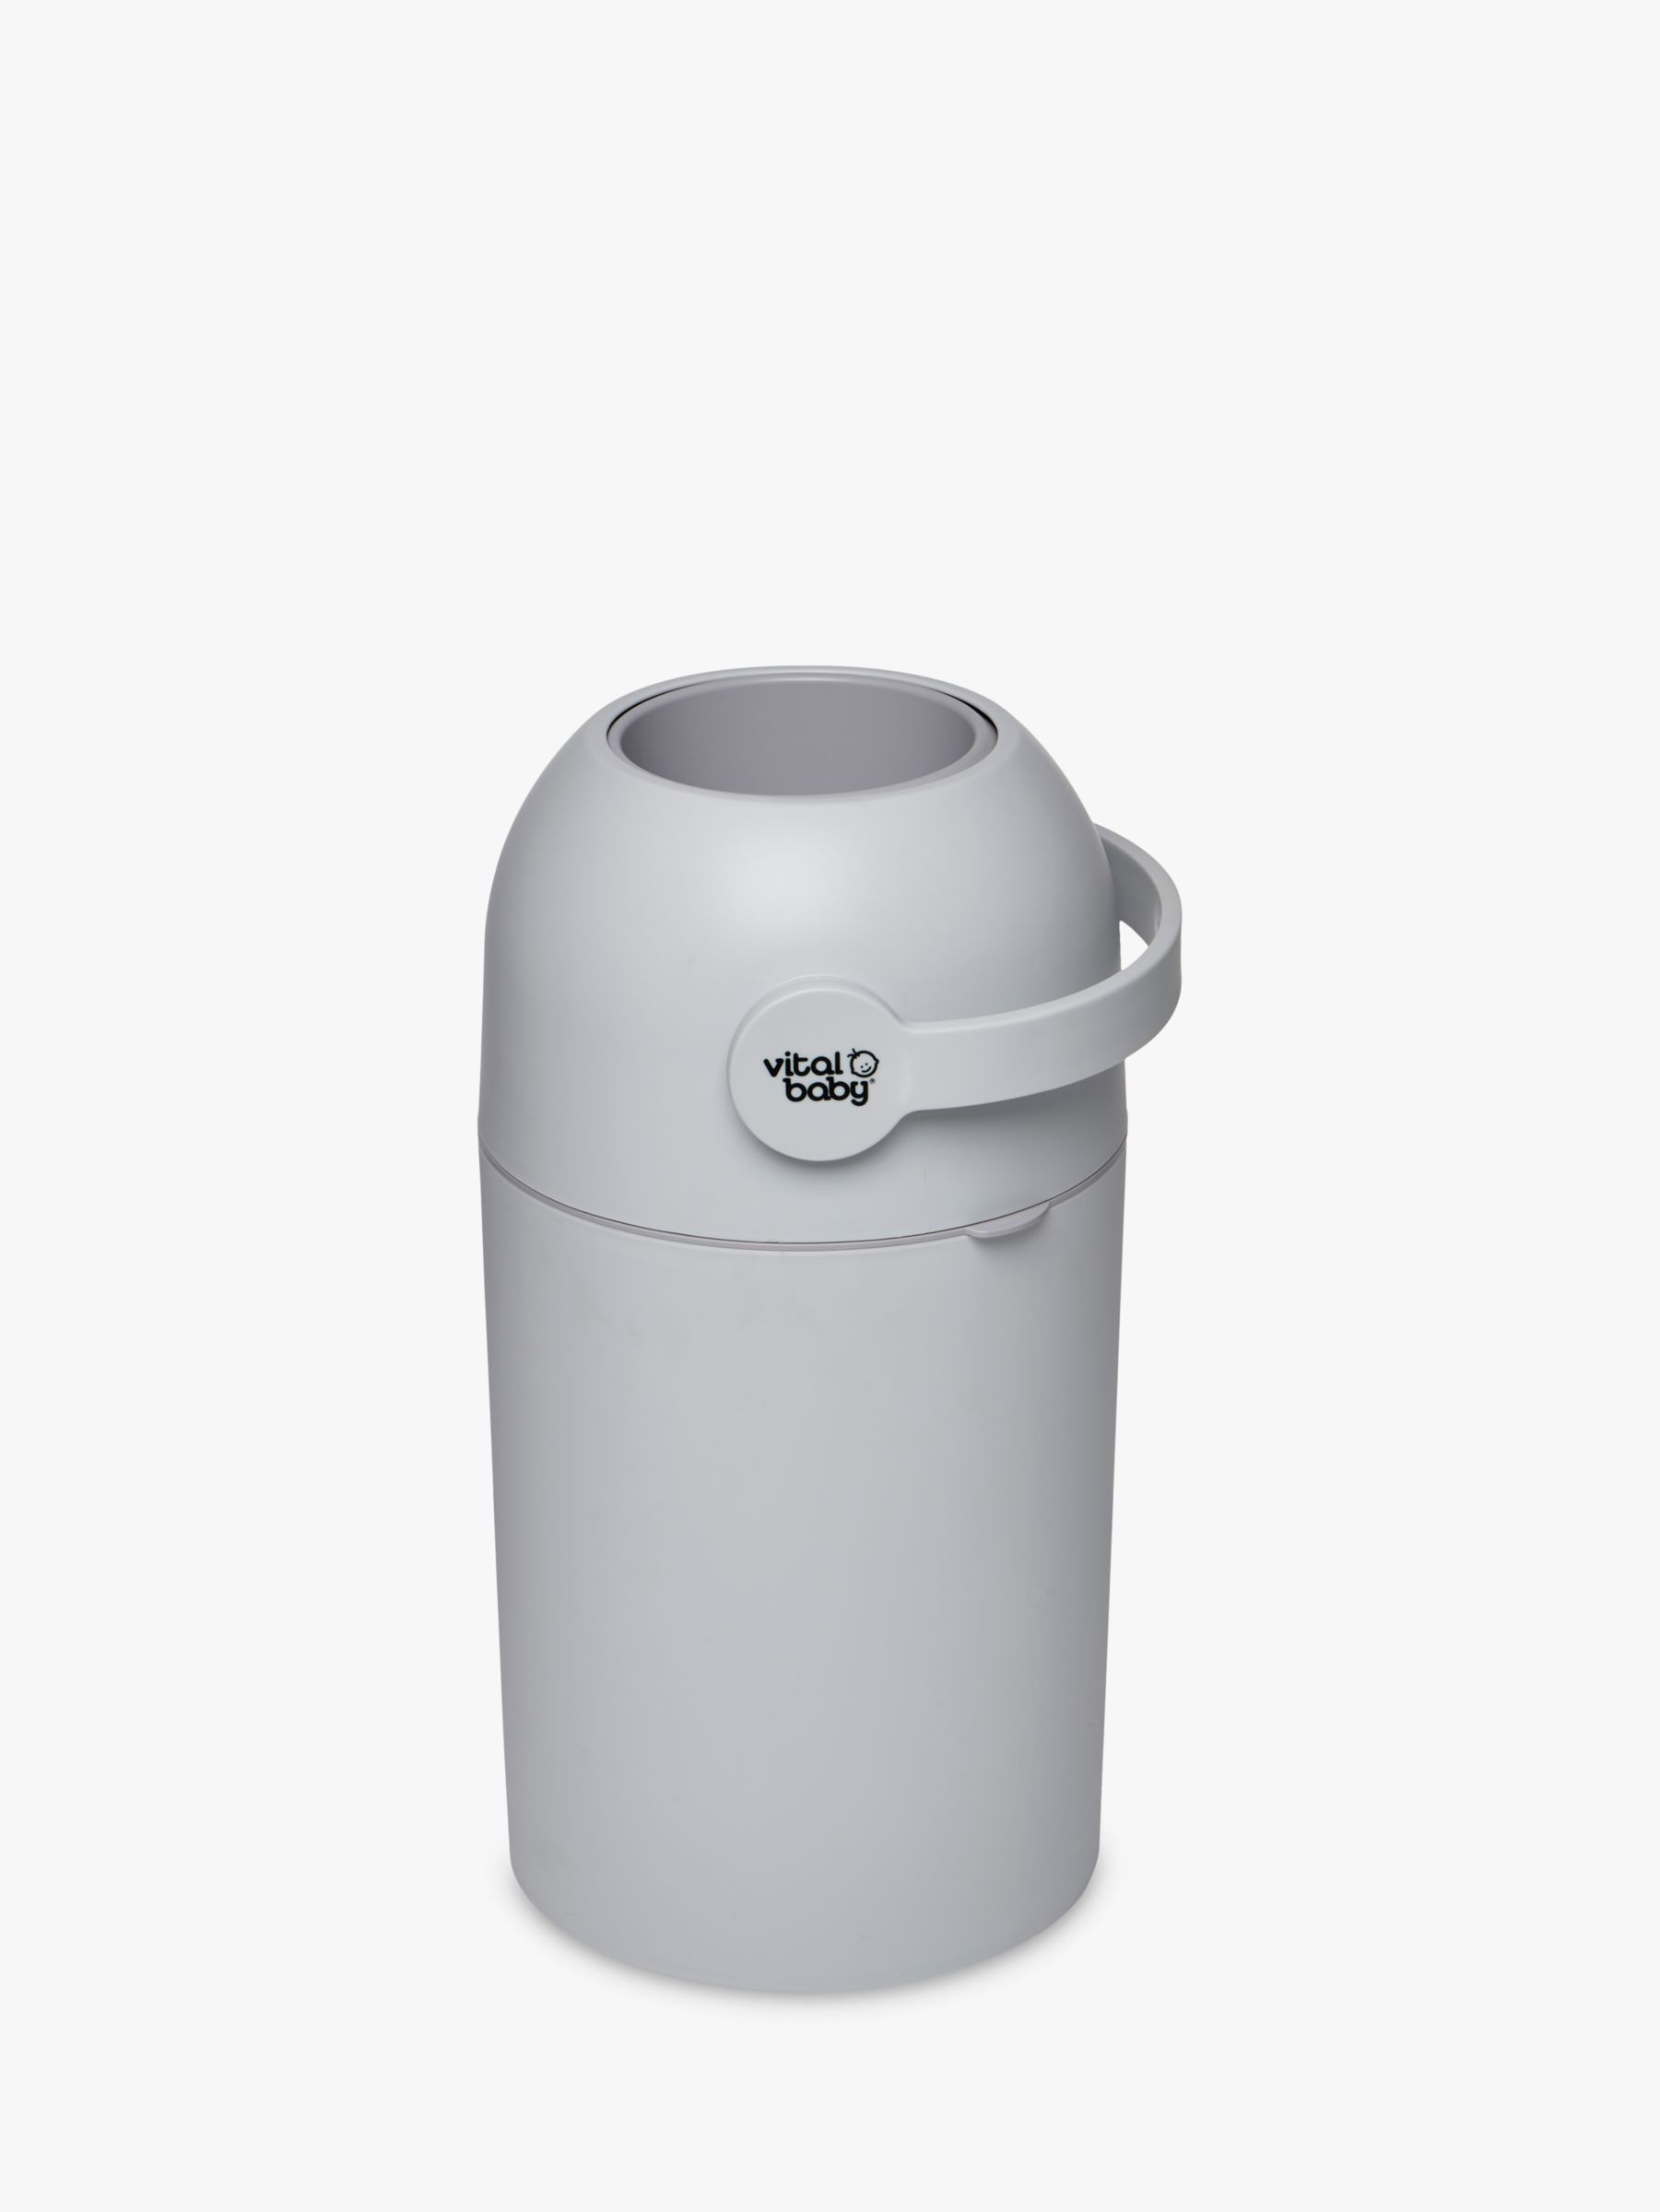 Vital Baby Vital Baby Hygiene Odour-Trap Nappy Disposal System